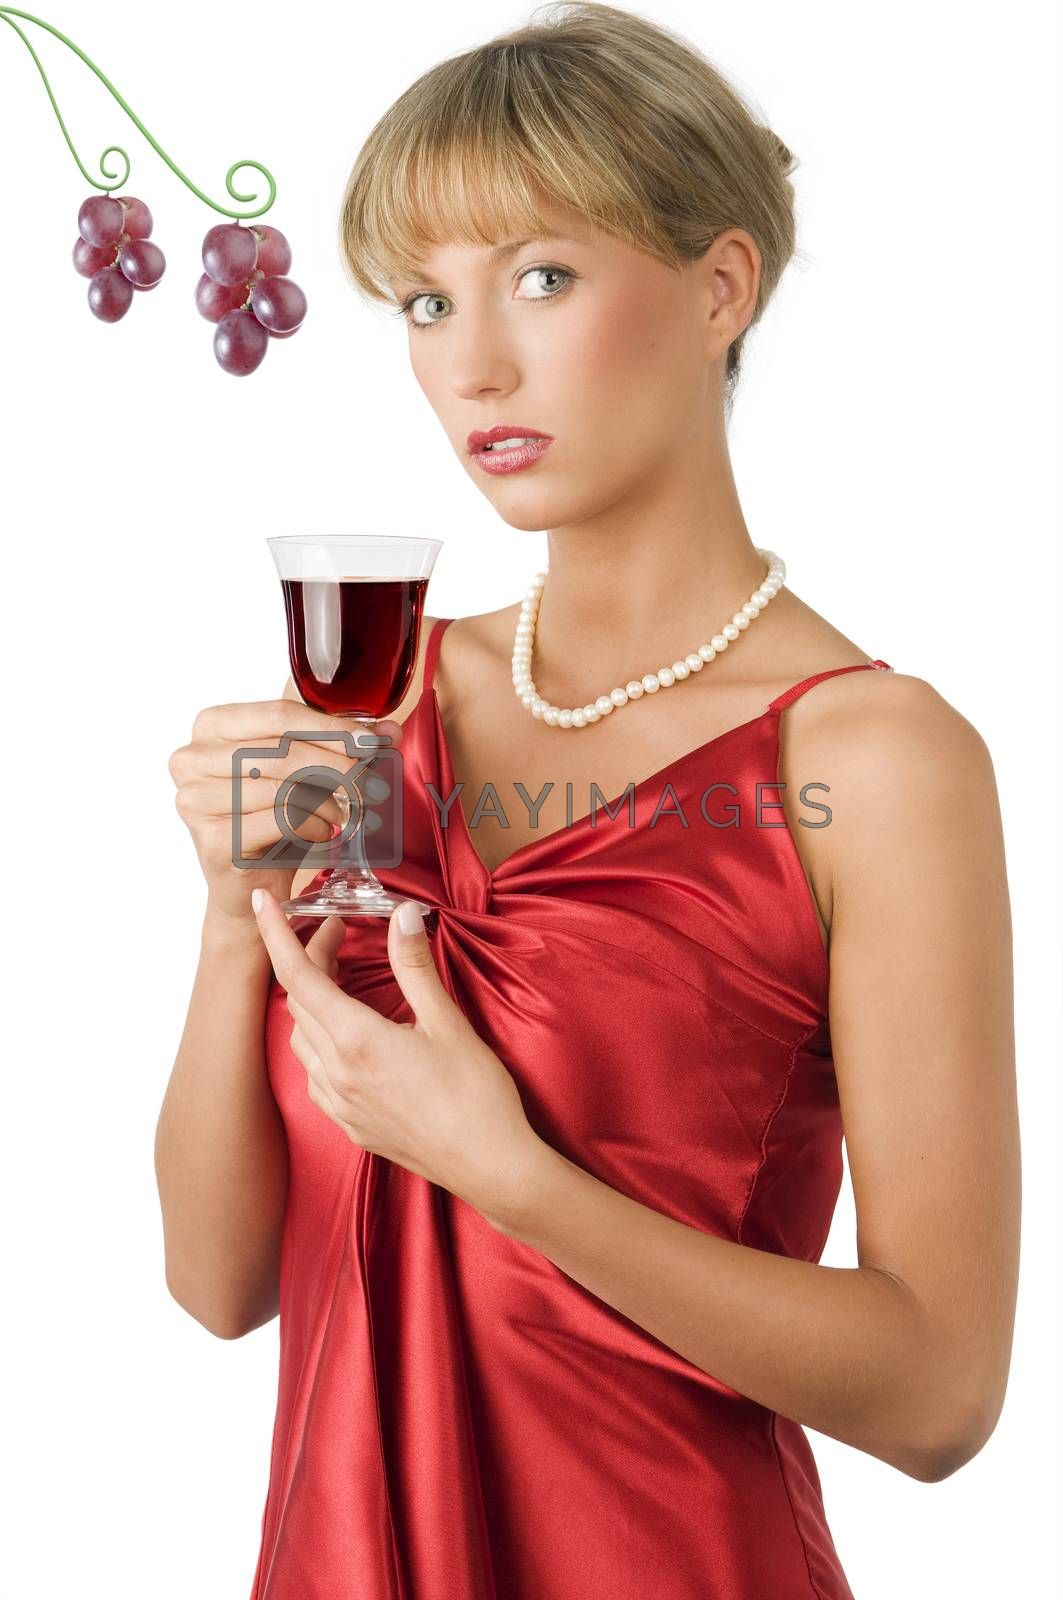 Royalty free image of upscale lady by fotoCD